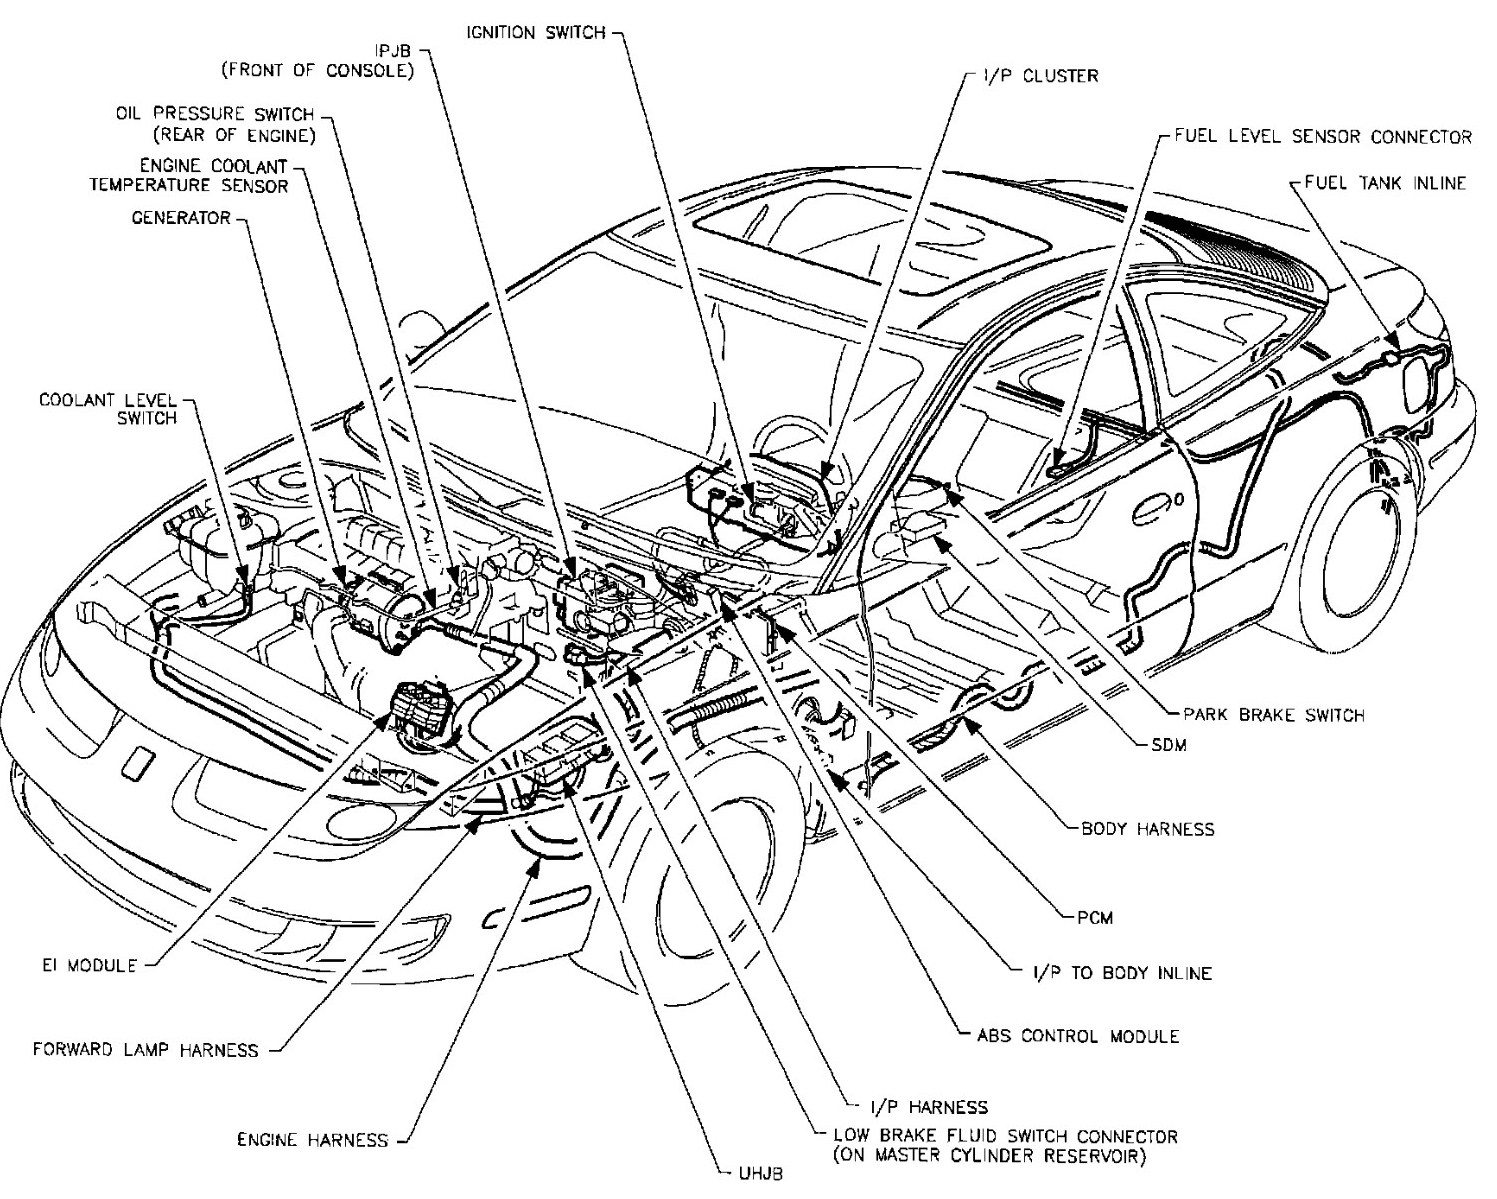 2001 Saturn Sl1 Engine Diagram Schematic Wiring Diagrams Sl2 Fuse Box 1997 Sc2 Schema 2000